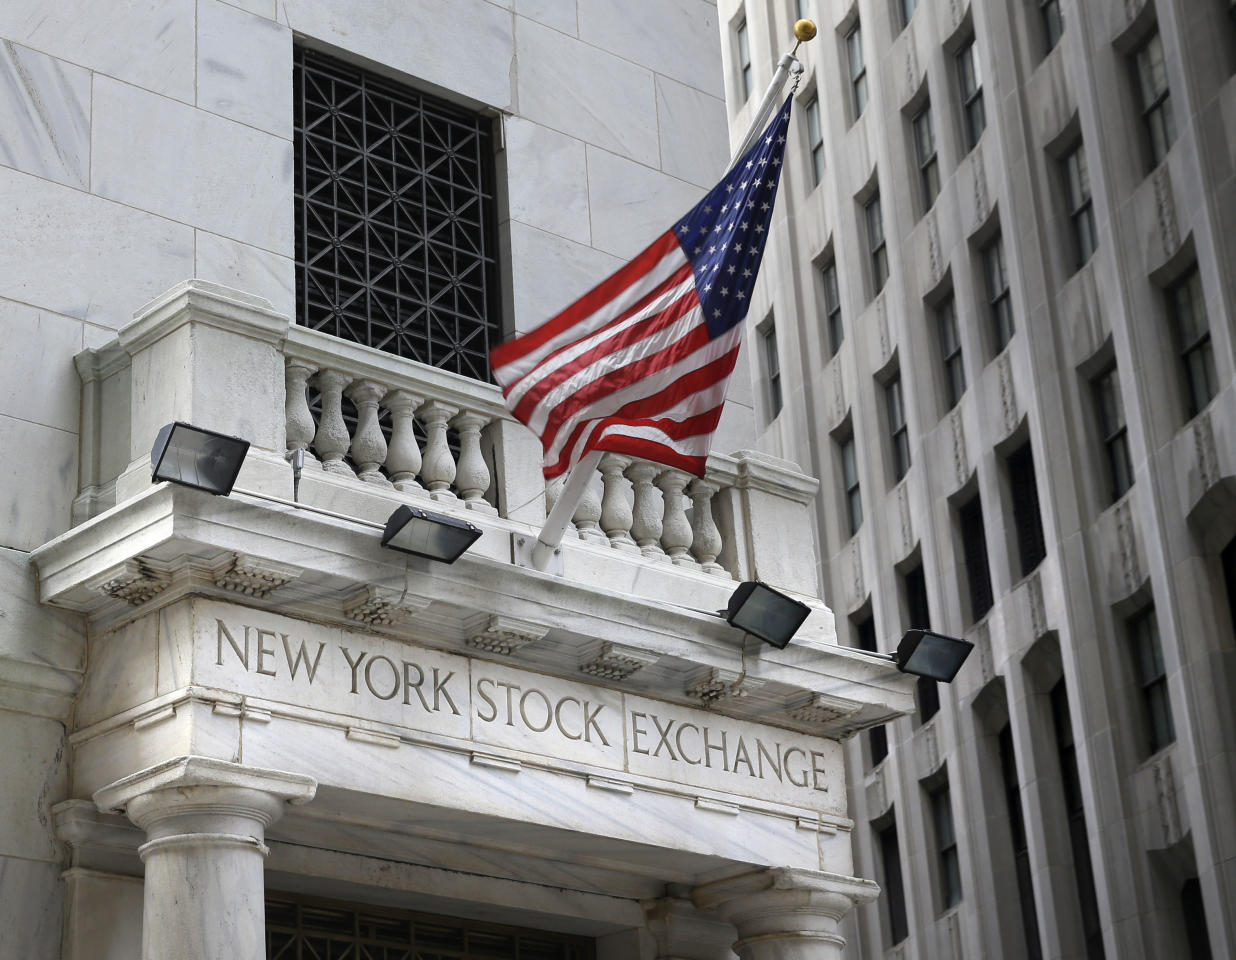 <p> FILE - This Monday, Aug. 24, 2015, file photo shows the New York Stock Exchange. Stocks are opening higher on Wall Street, Wednesday, Oct. 18, 2017, as IBM surges on third-quarter profit and health care companies, banks and technology firms also rise. (AP Photo/Seth Wenig, File) </p>